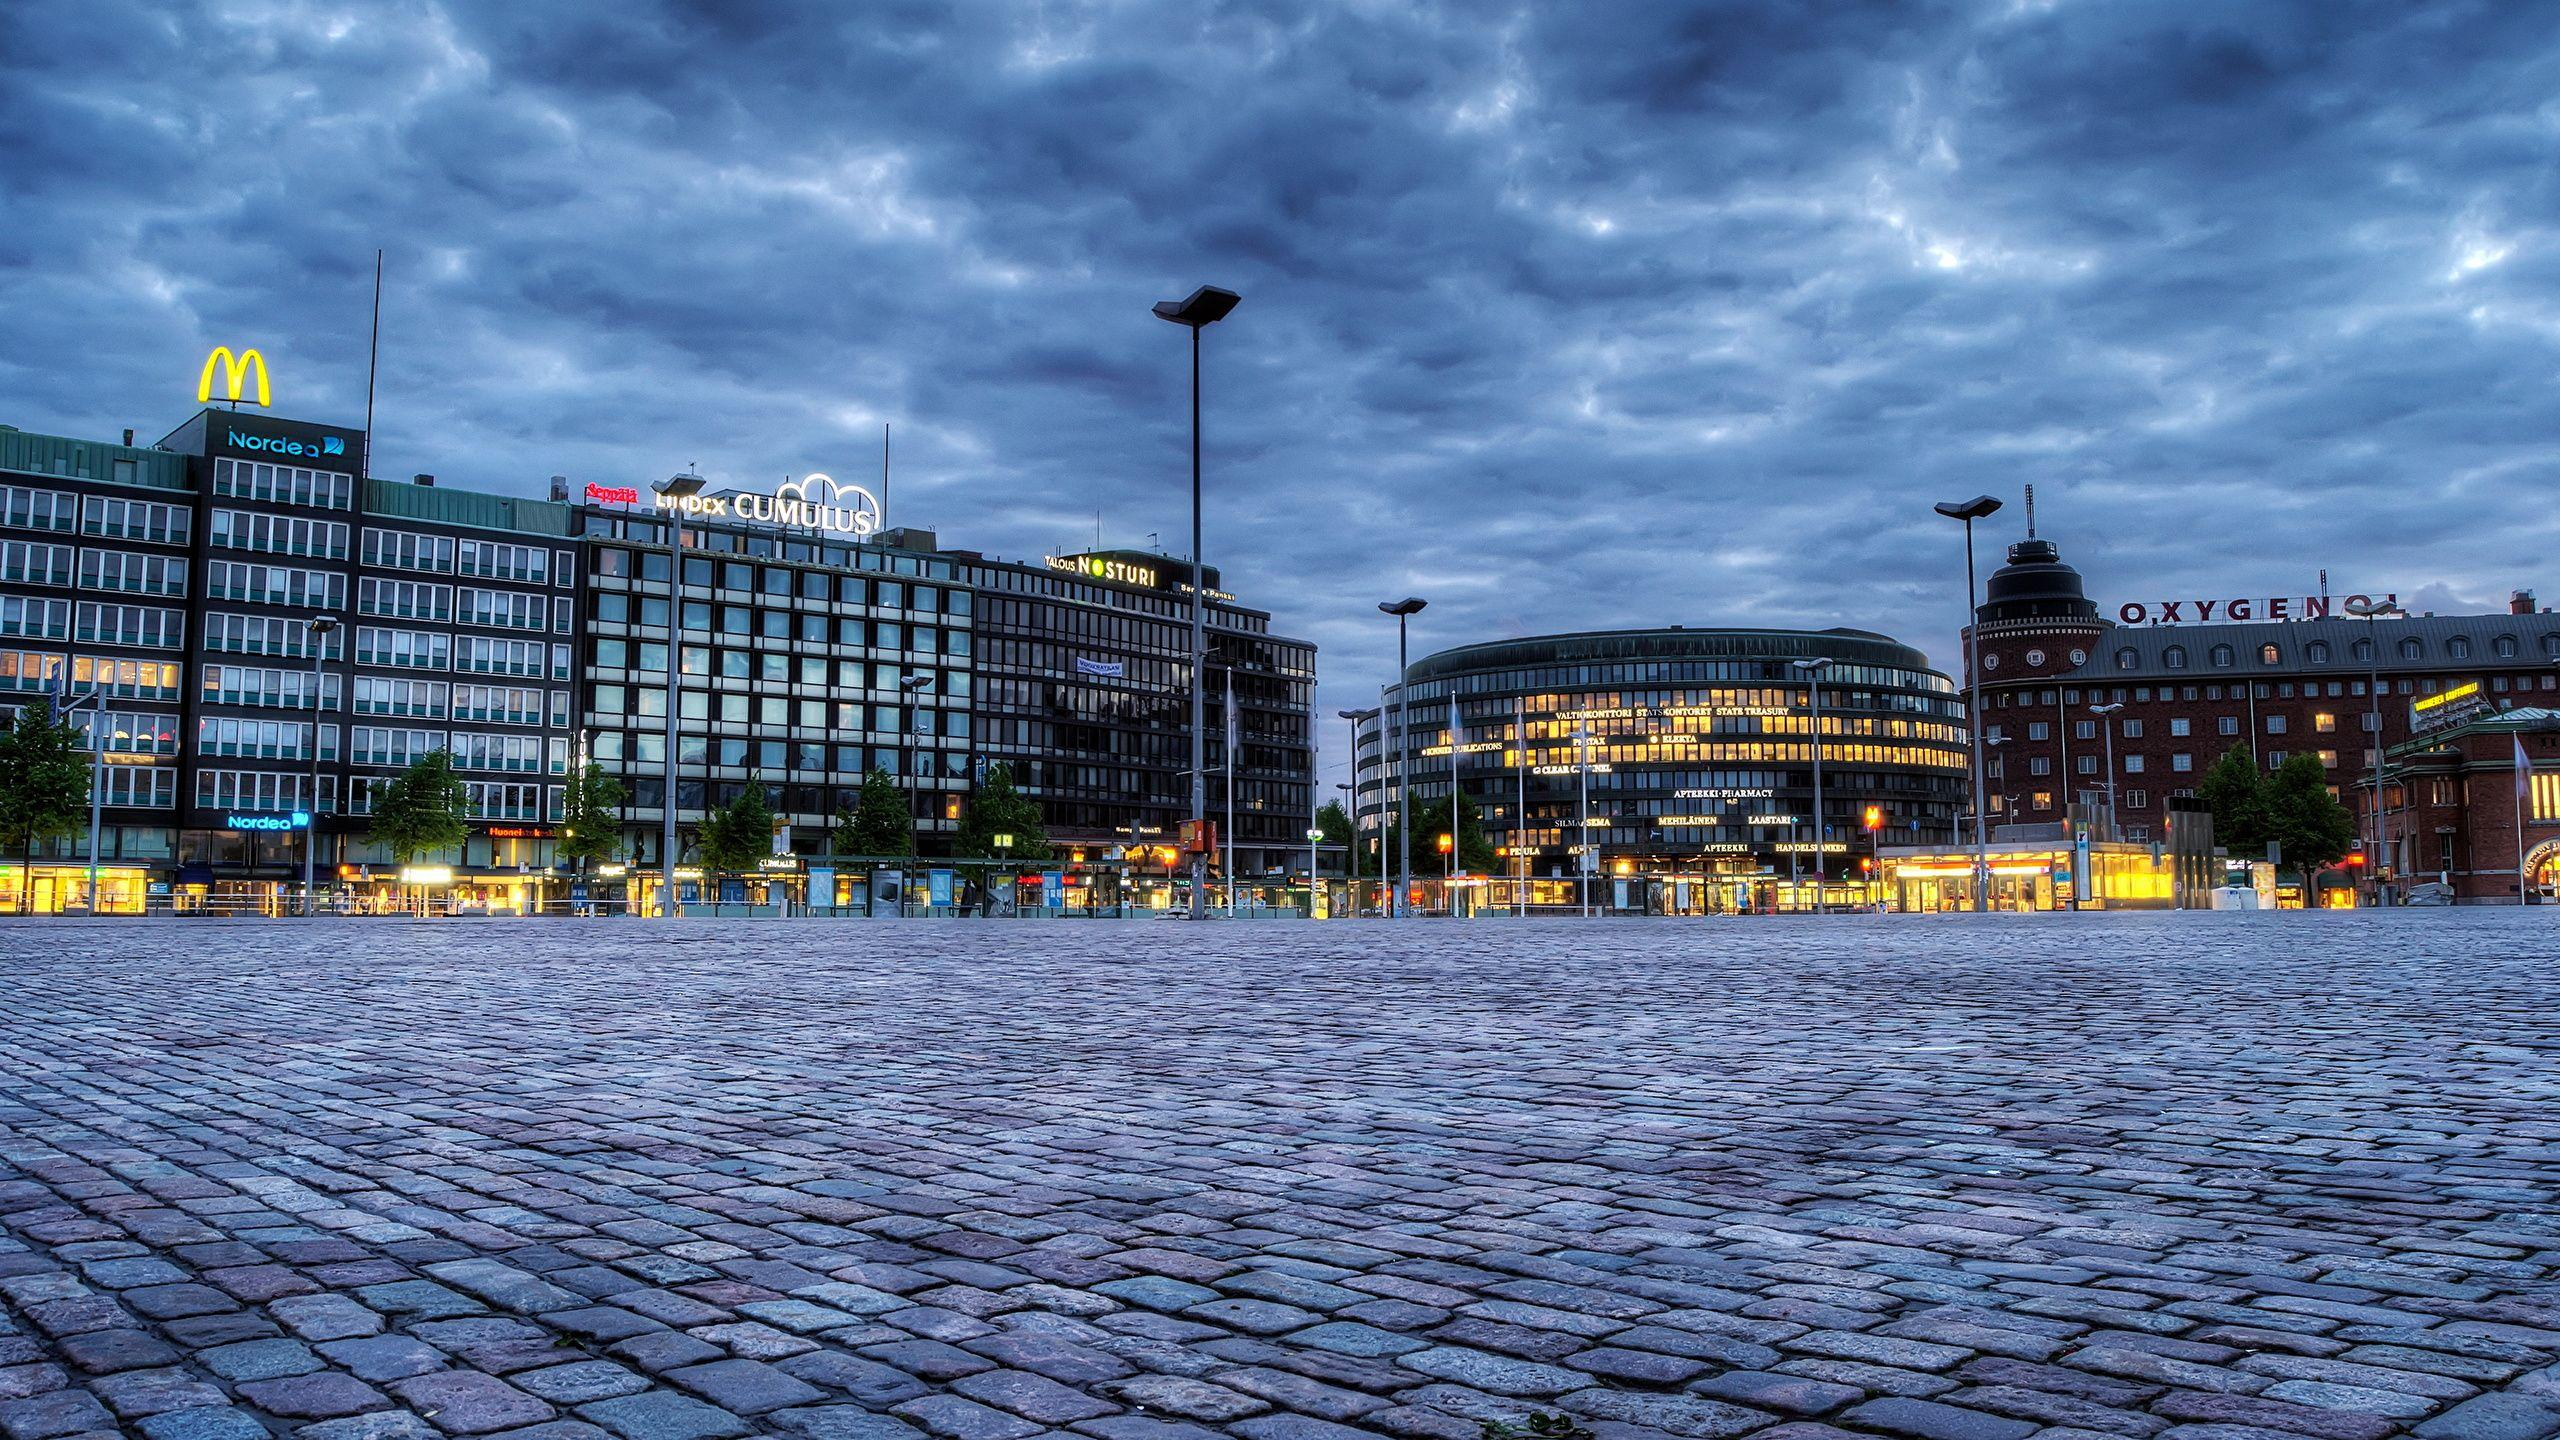 Photos Helsinki Finland HDR Sky Street lights Cities 2560x1440